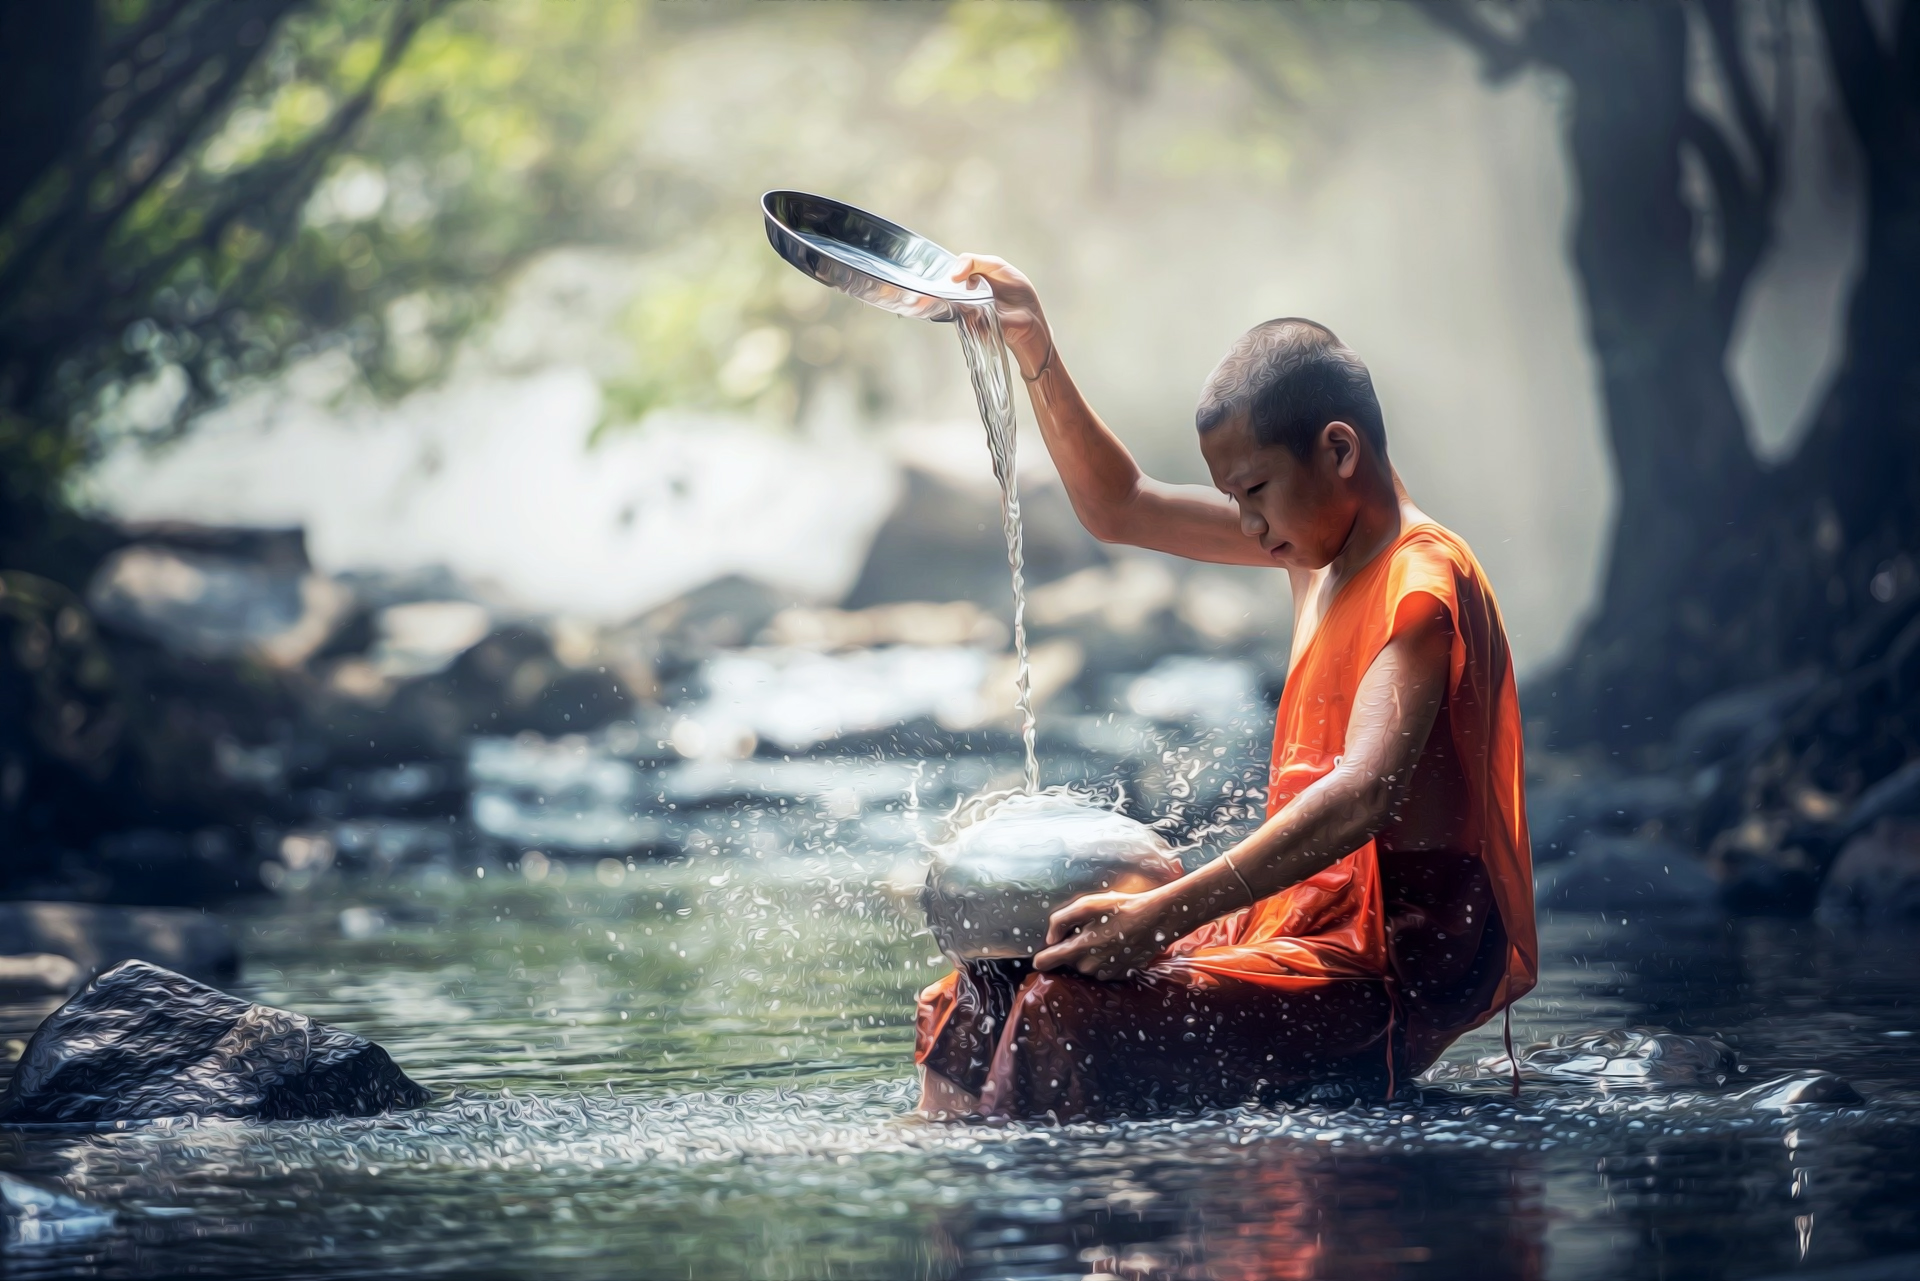 <h1>Monkey-mind to Monk: The Life Cycle of a Meditation Habit</h1> <h4>From the seeds of preaching to the fruits of practice-the 3 phases of meditation</h4>